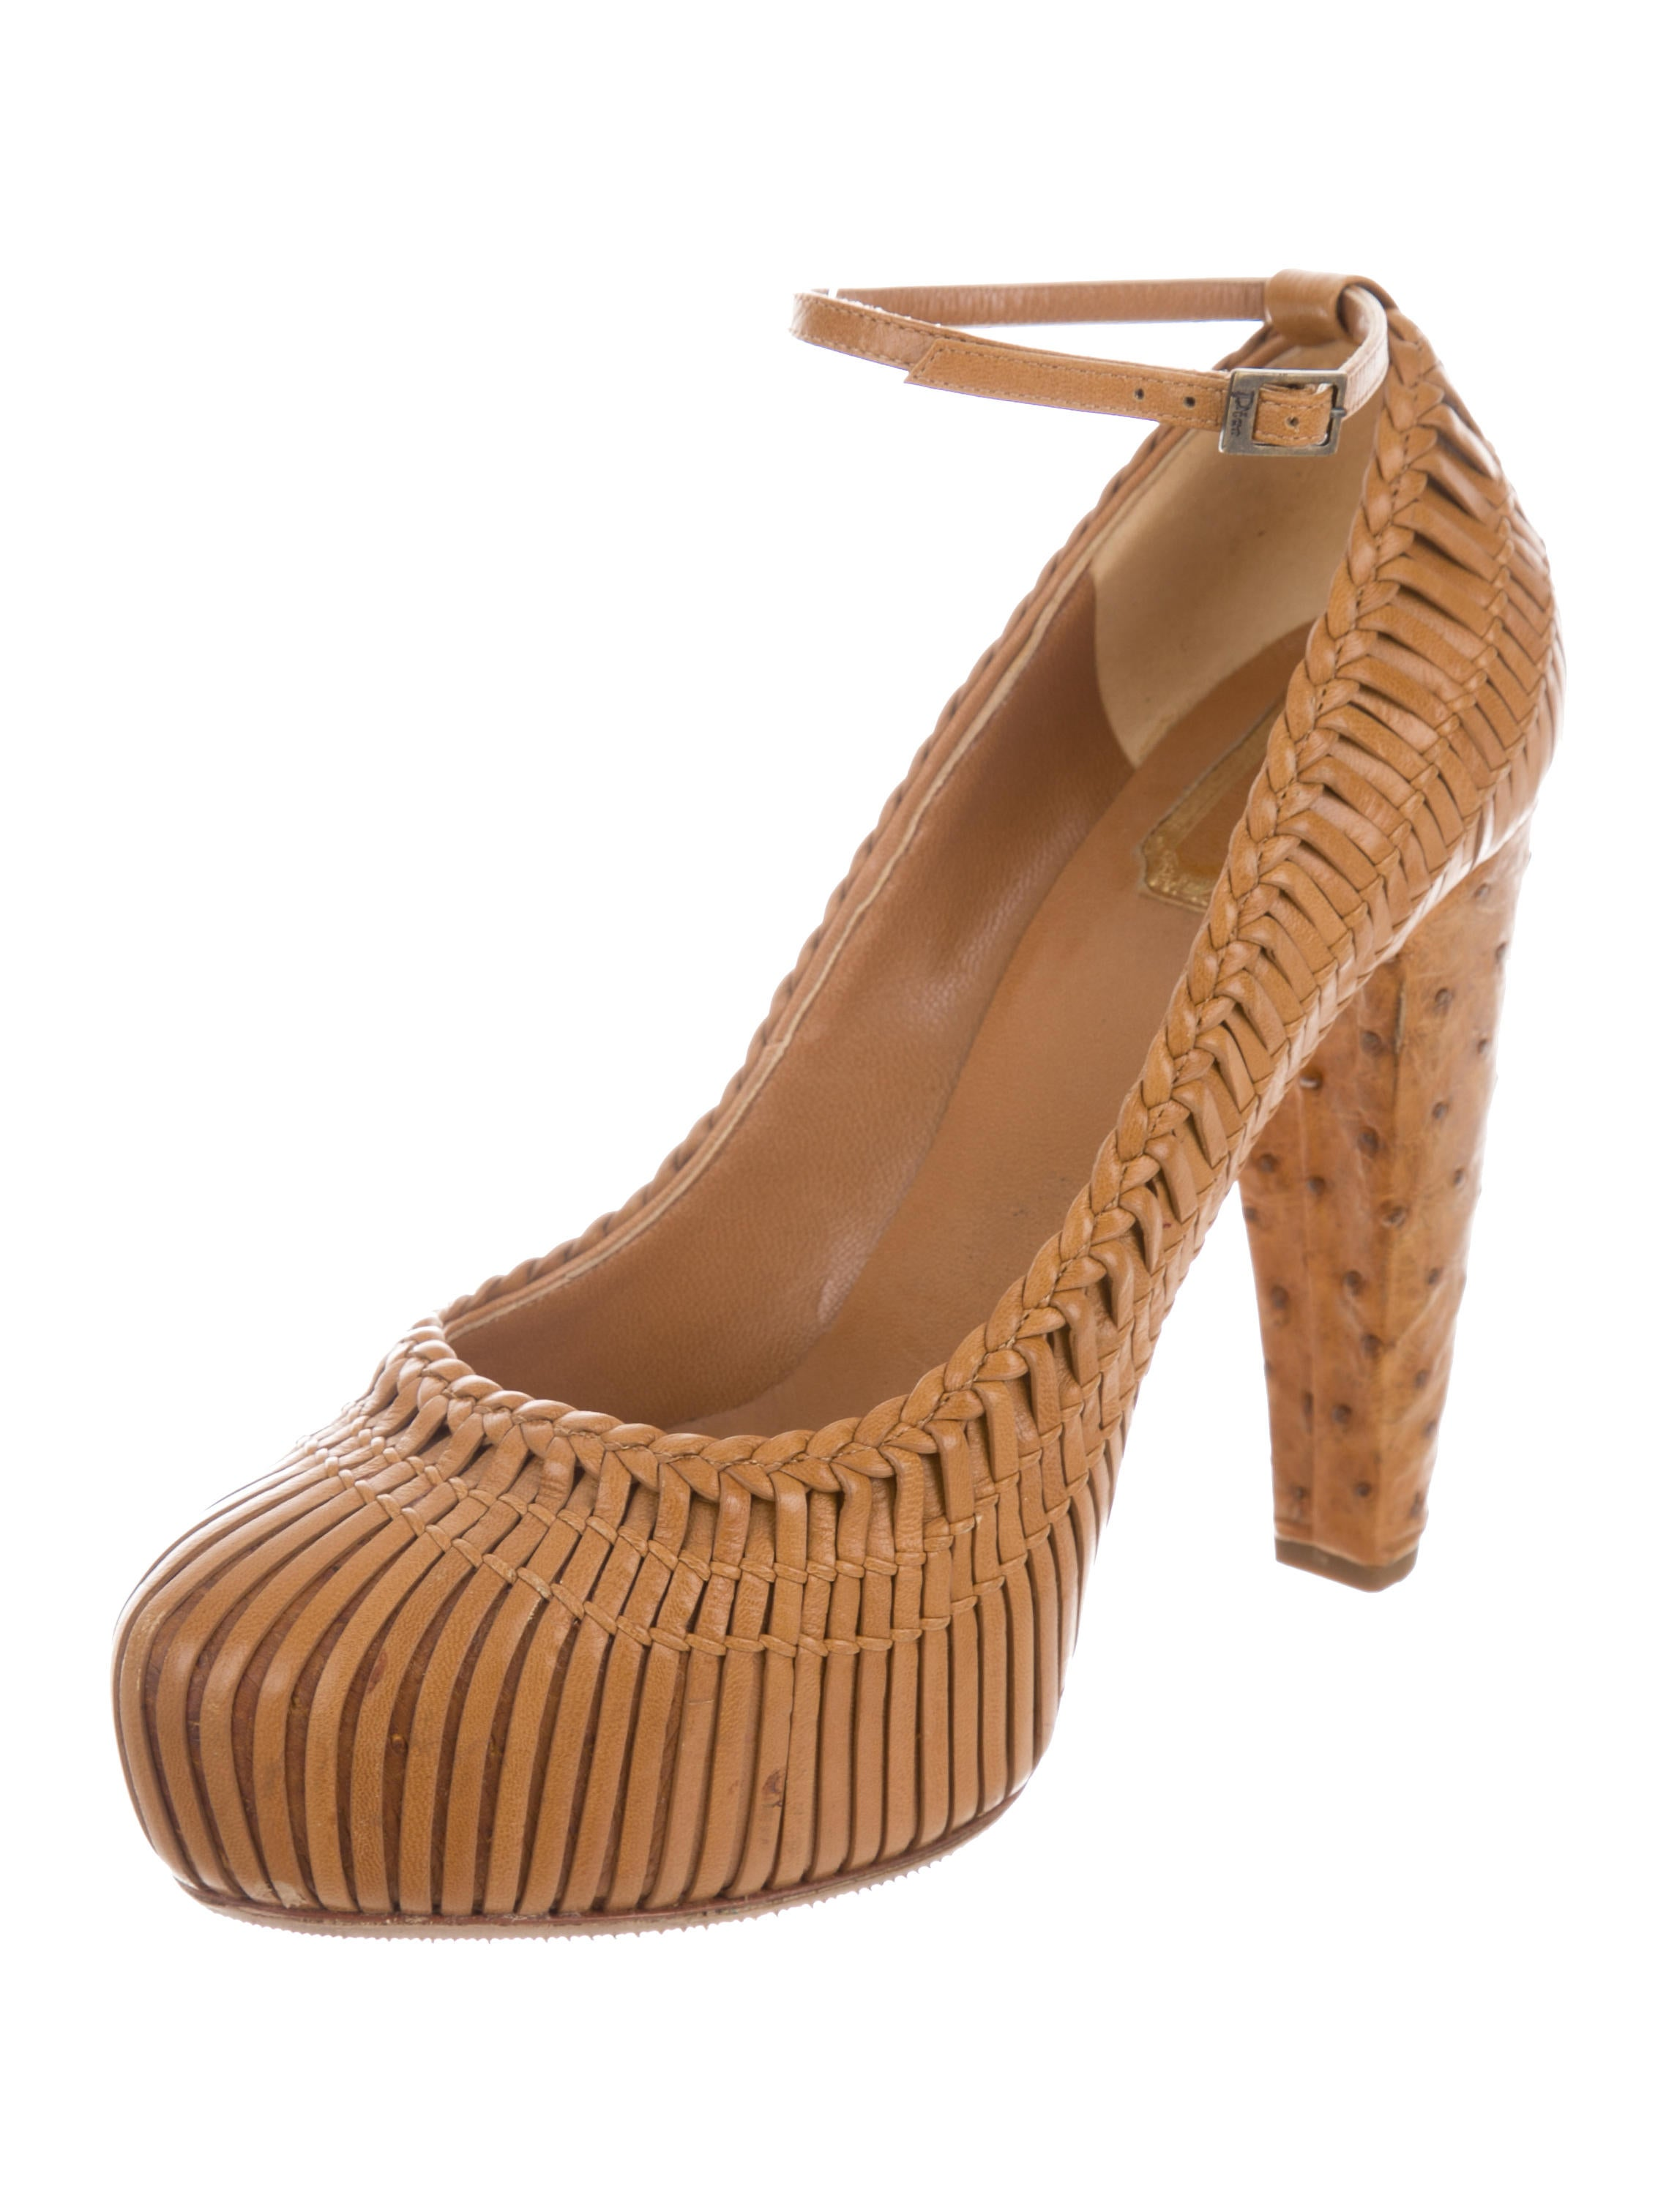 Christian Dior Ostrich-Trimmed Woven Pumps sale sast official site online Ph42wl